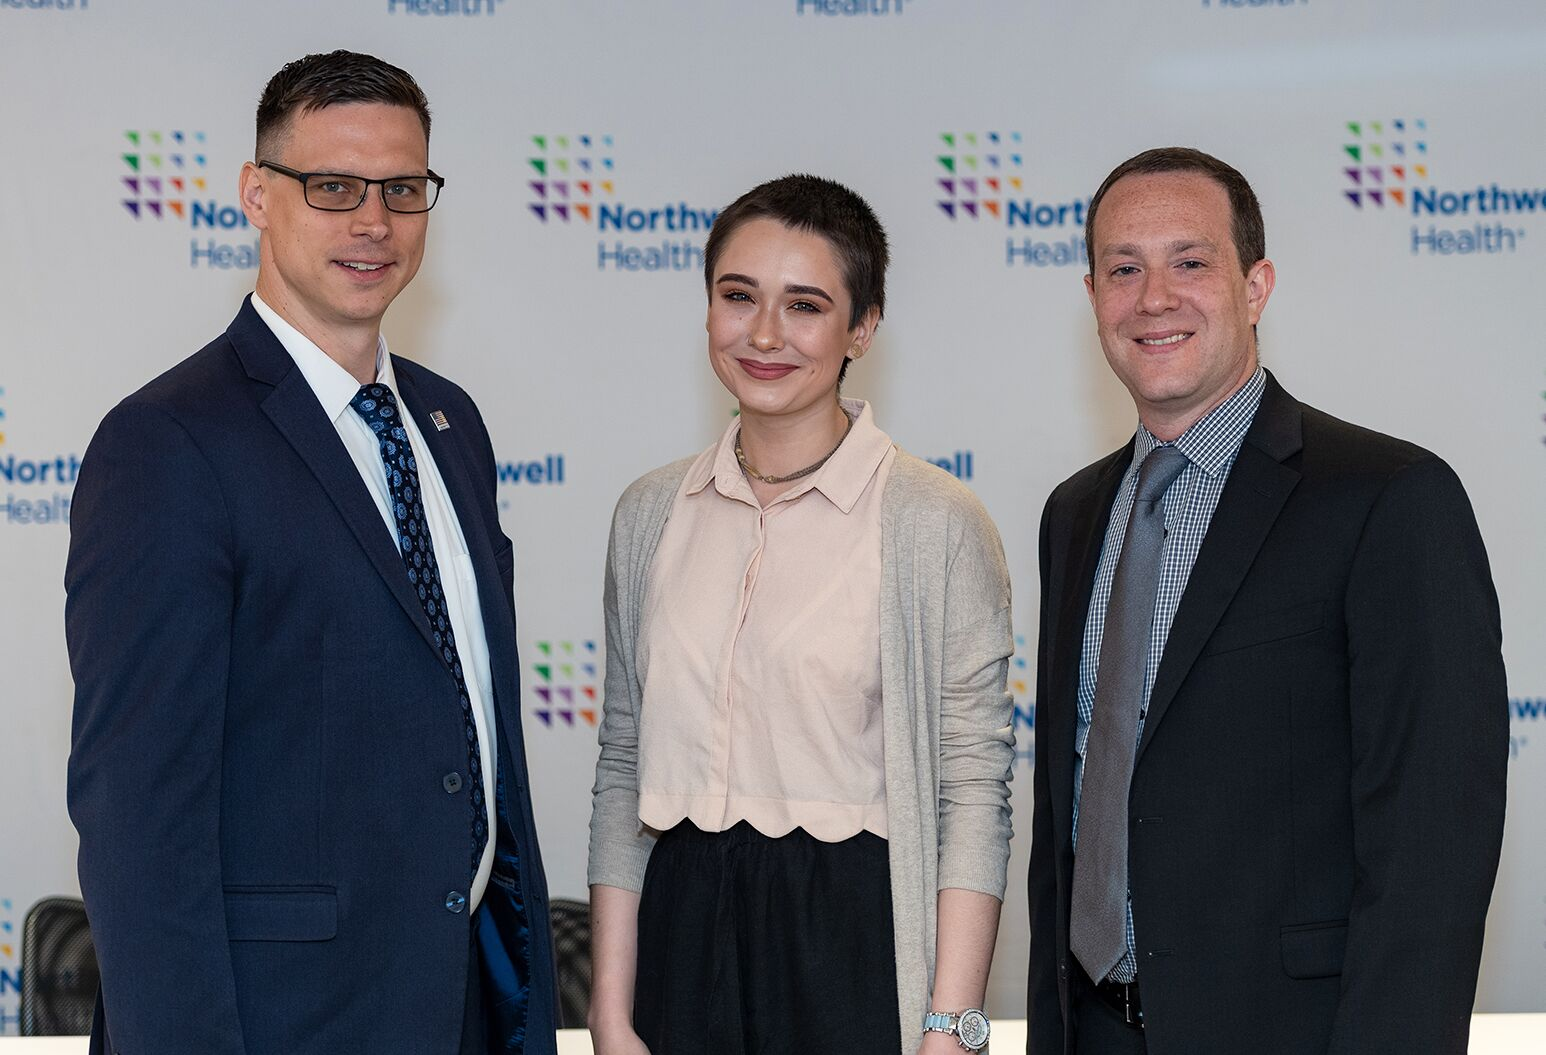 From left: Charles Taylor of Northwell's Office of Military and Veterans Liaison Services; Alyssa Harper, 18; and Dr. Mayer Bellehsen, Director of the United Behavioral Health Center in Bay Shore.